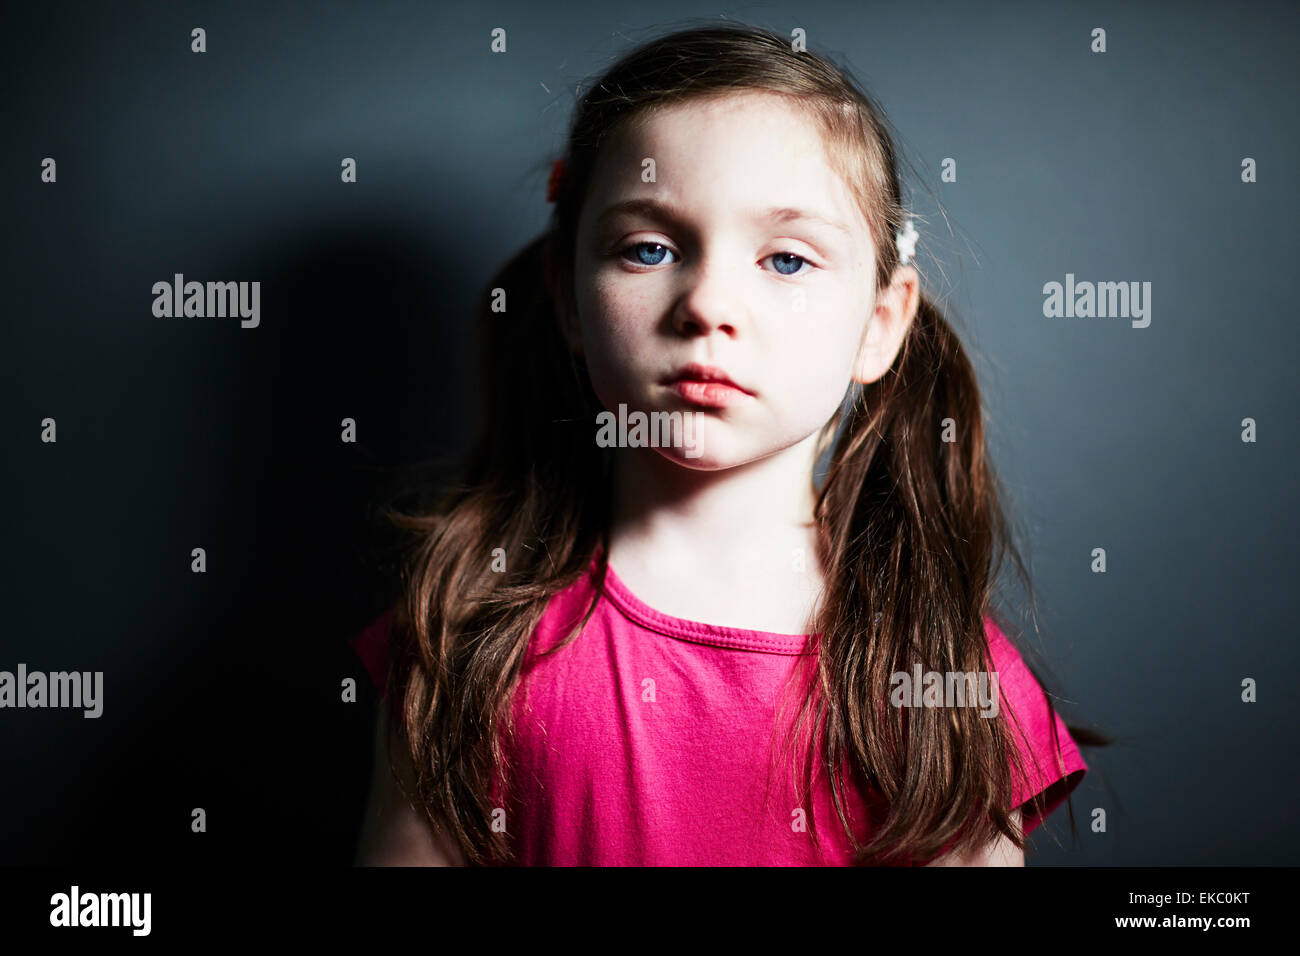 Girl with pigtails Photo Stock